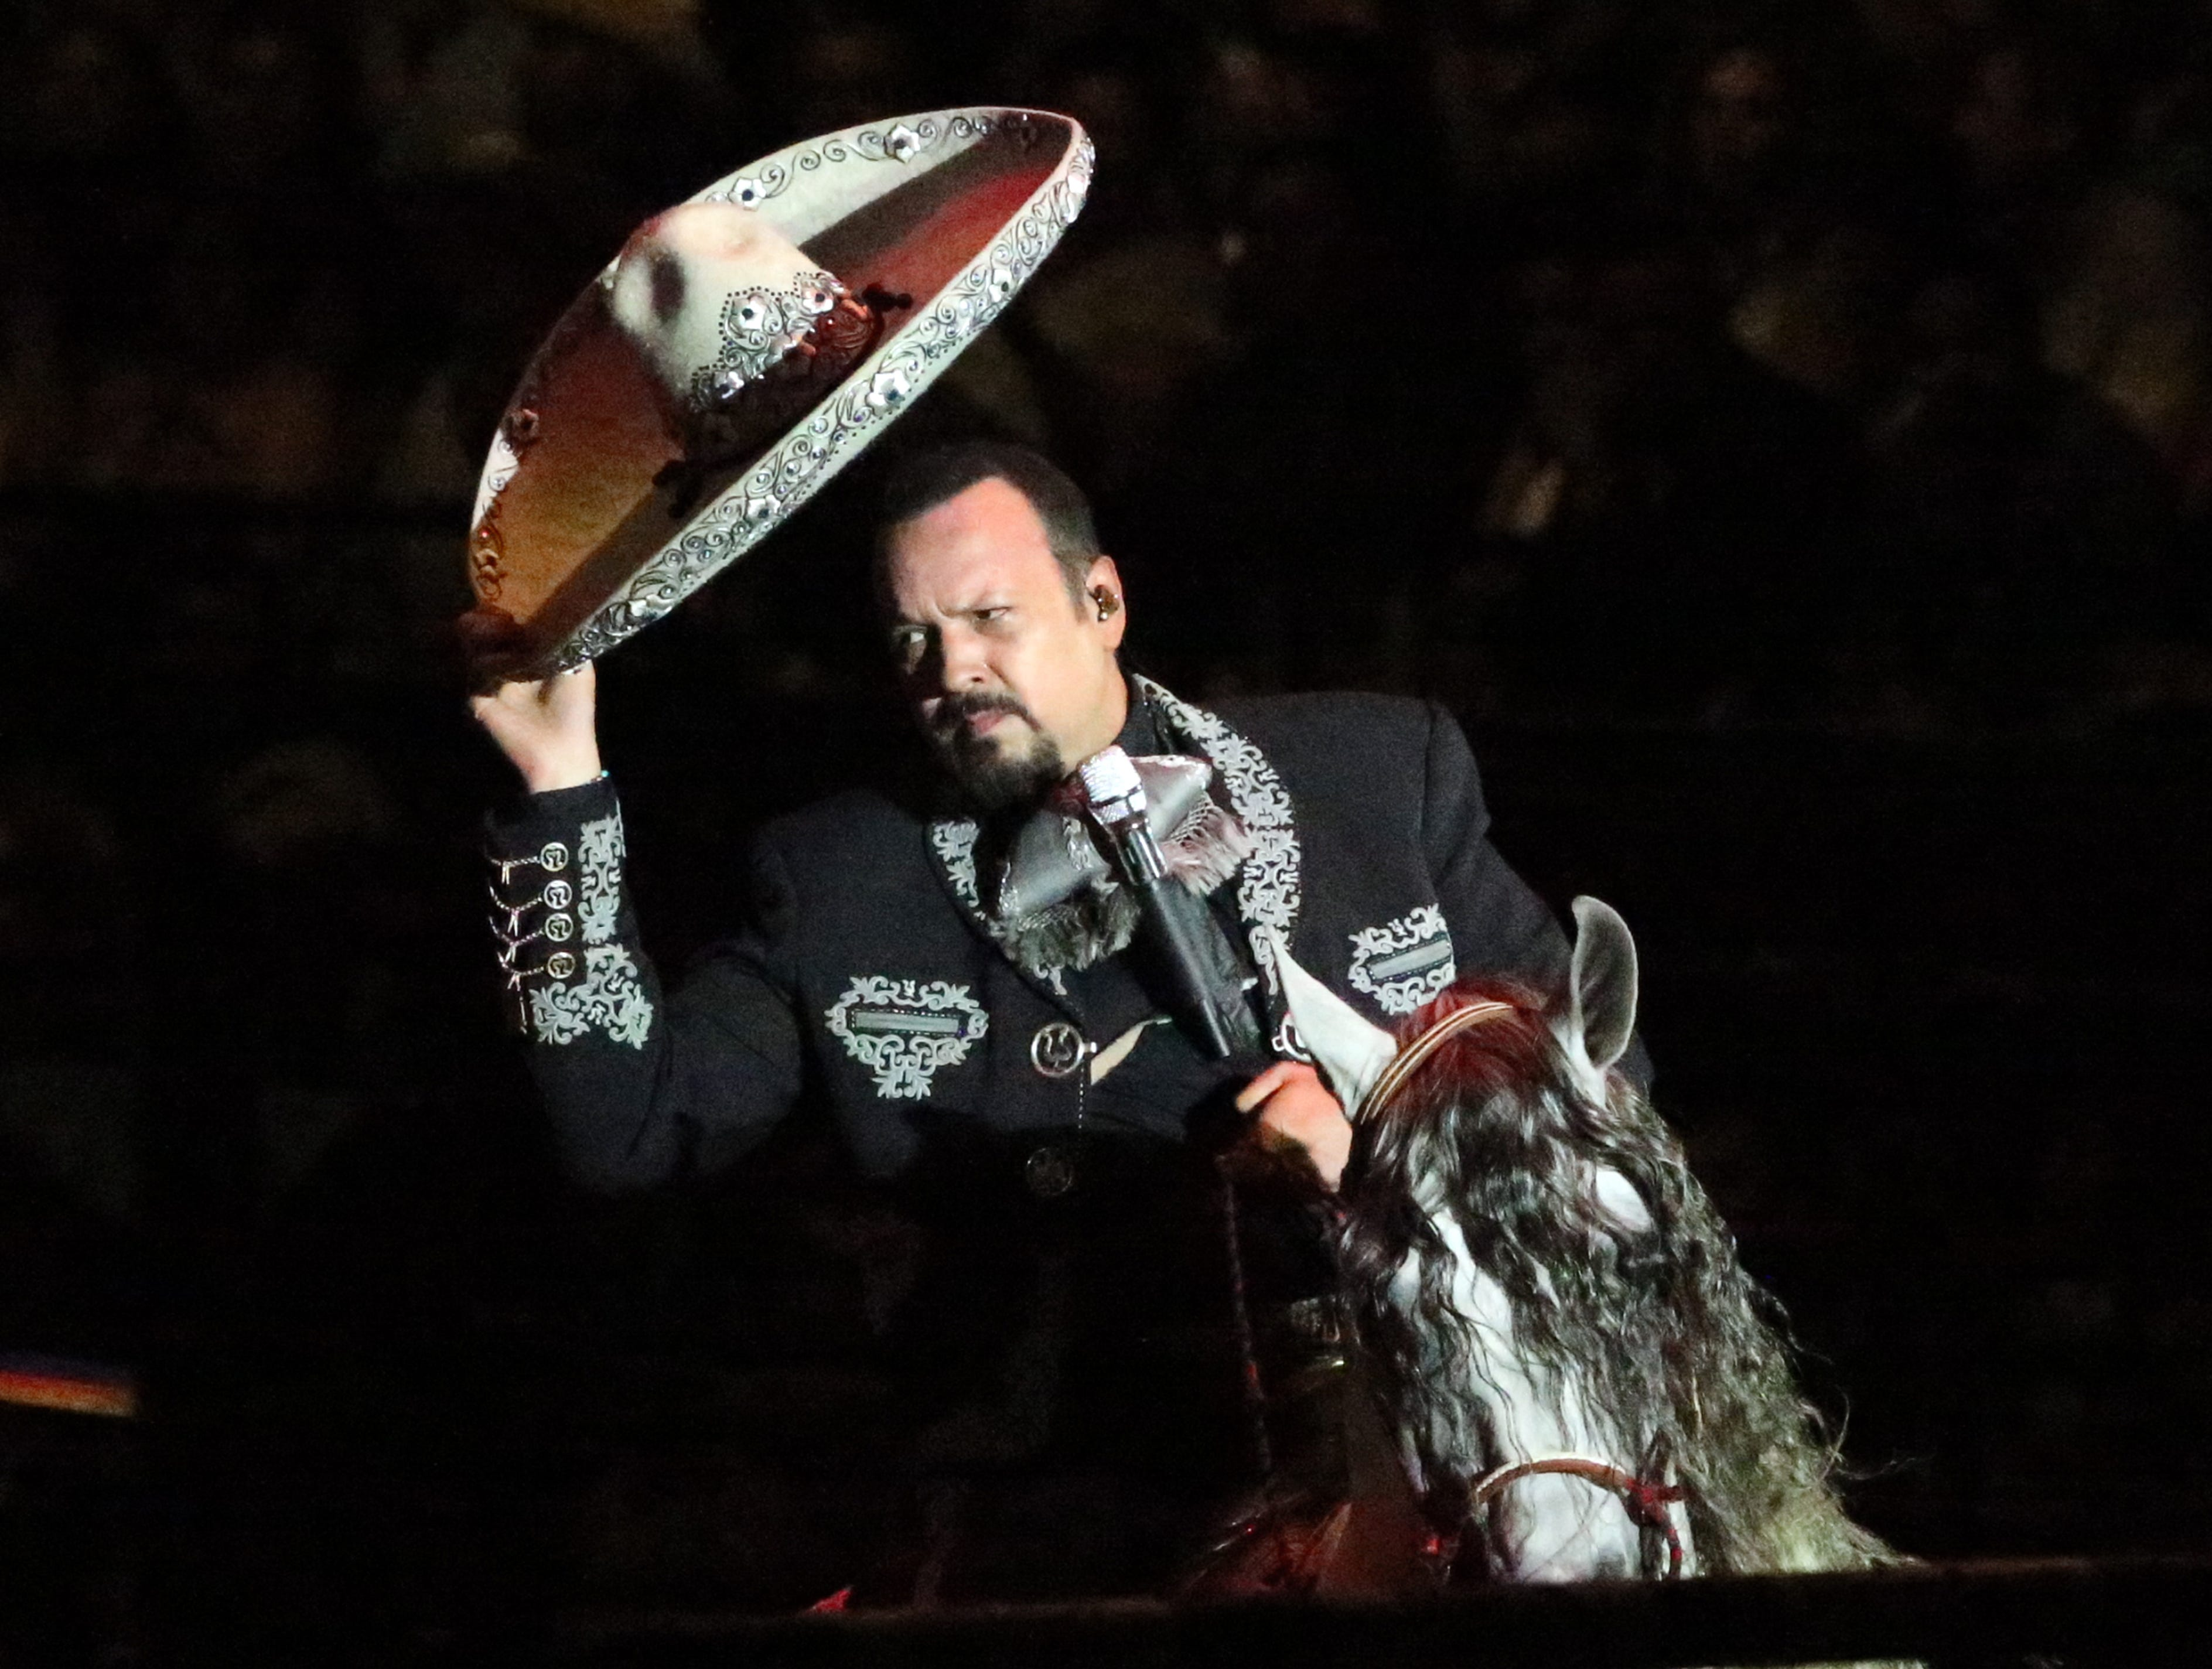 Mexican singer Pepe Aguilar enters the arena to the delight of a sold out crowd during his 'Jaripeo Sin Fronteras' show at El Paso County Coliseum Saturday. Aguilar's family, including son Leonardo Aguilar, 18, daughter Angela Aguilar, 14, and brother Antonio Aguilar performed their own song sets before Pepe rode into a rodeo arena on horseback. The Aguilar family was backed up by a large orchestra and band on a high stage. The show included a set by singer-songwriter Christian Nodal, an all-female horse riding group and bull riding by American and Mexican cowboys all before Pepe Aguilar appeared.